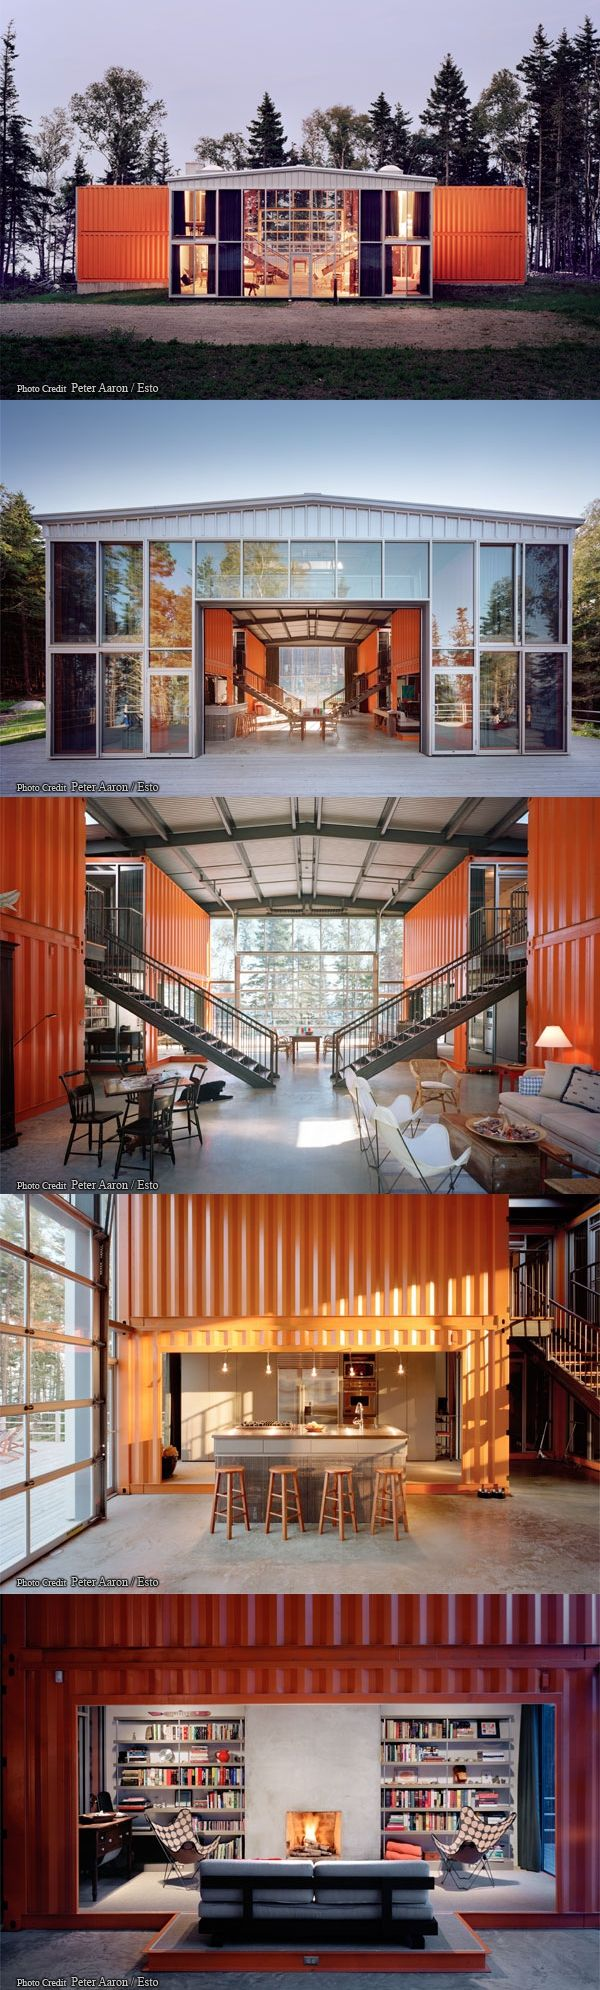 container house by adam kalkin